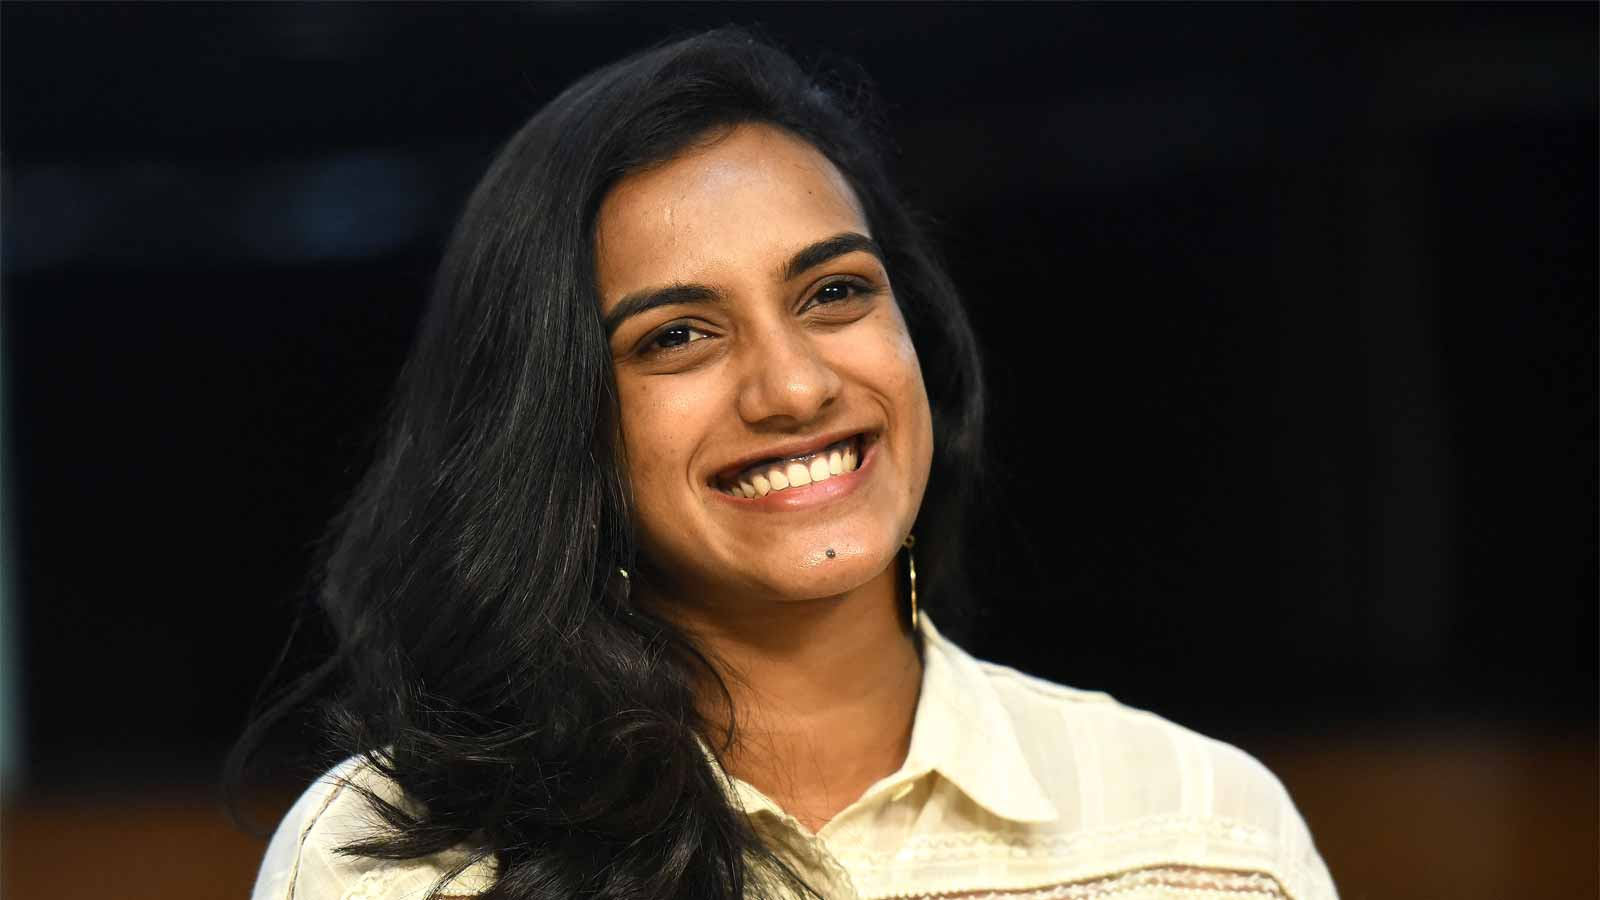 indias-ace-badminton-star-pv-sindhu-on-tokyo-olympics-preparations-and-more